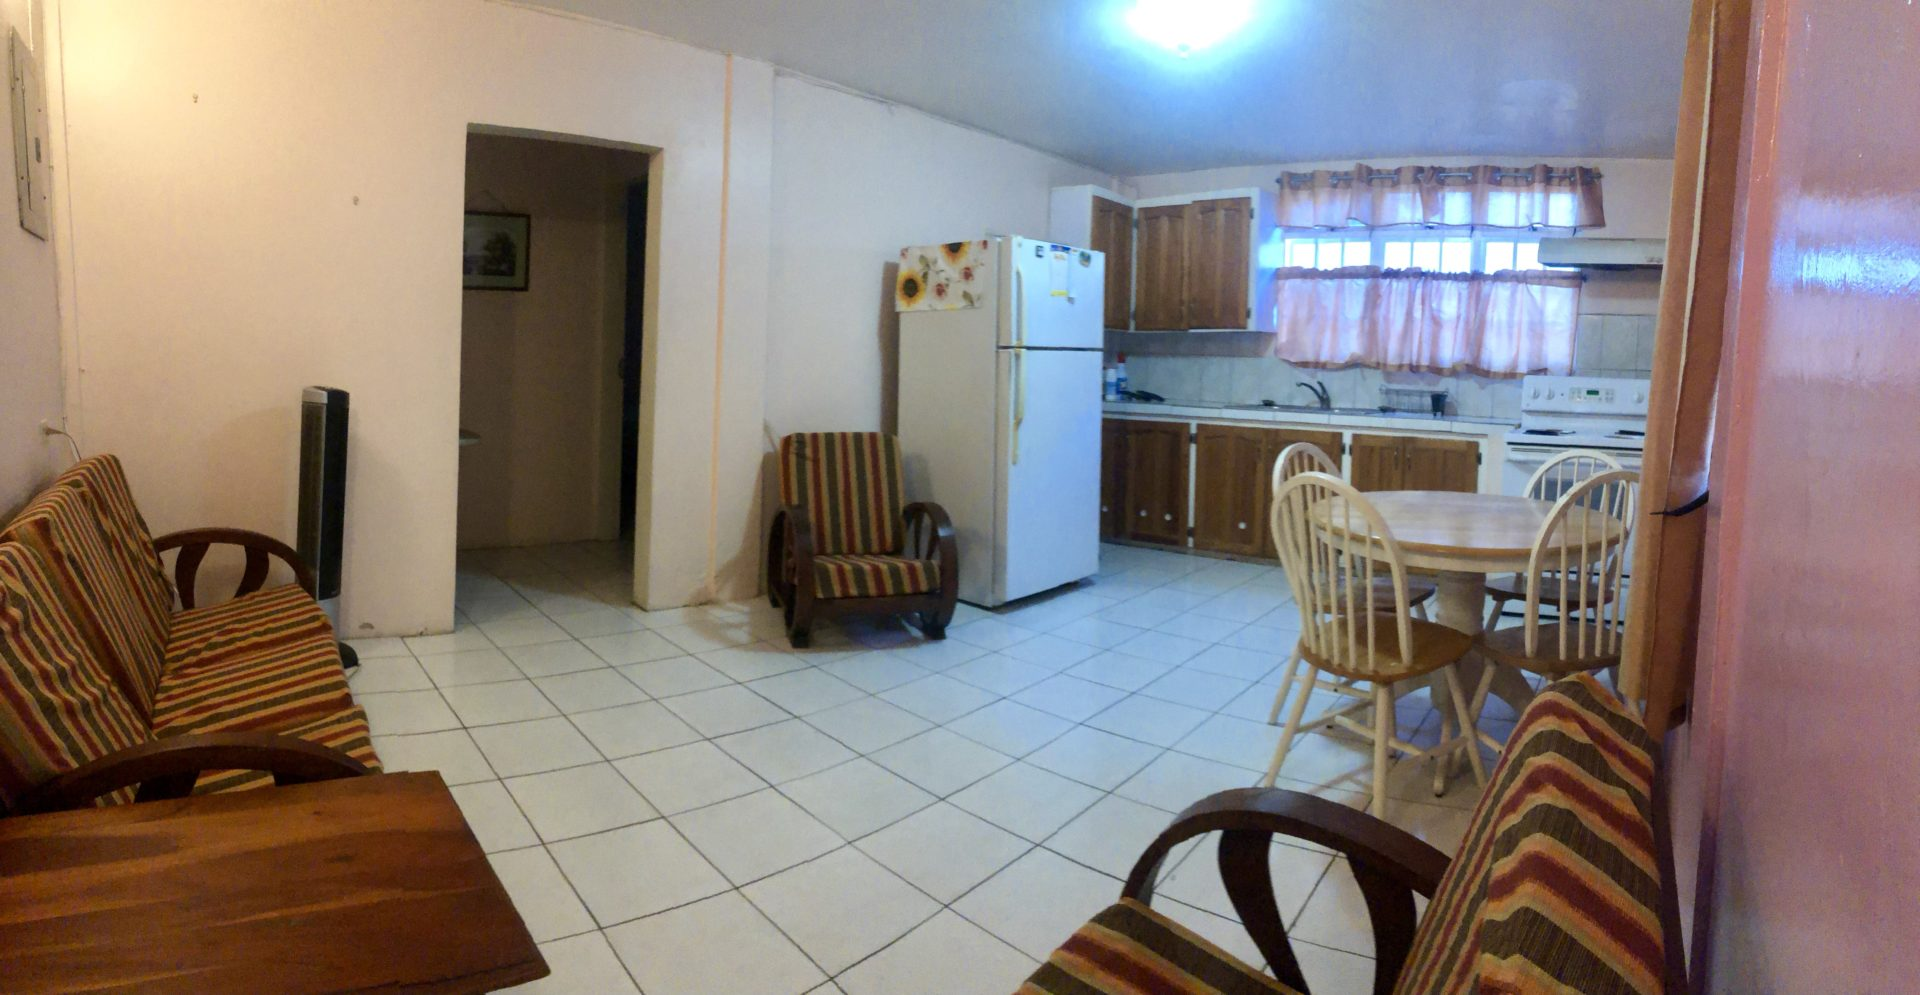 2 bedroom apartment for rent  furnished  my bunch of keys